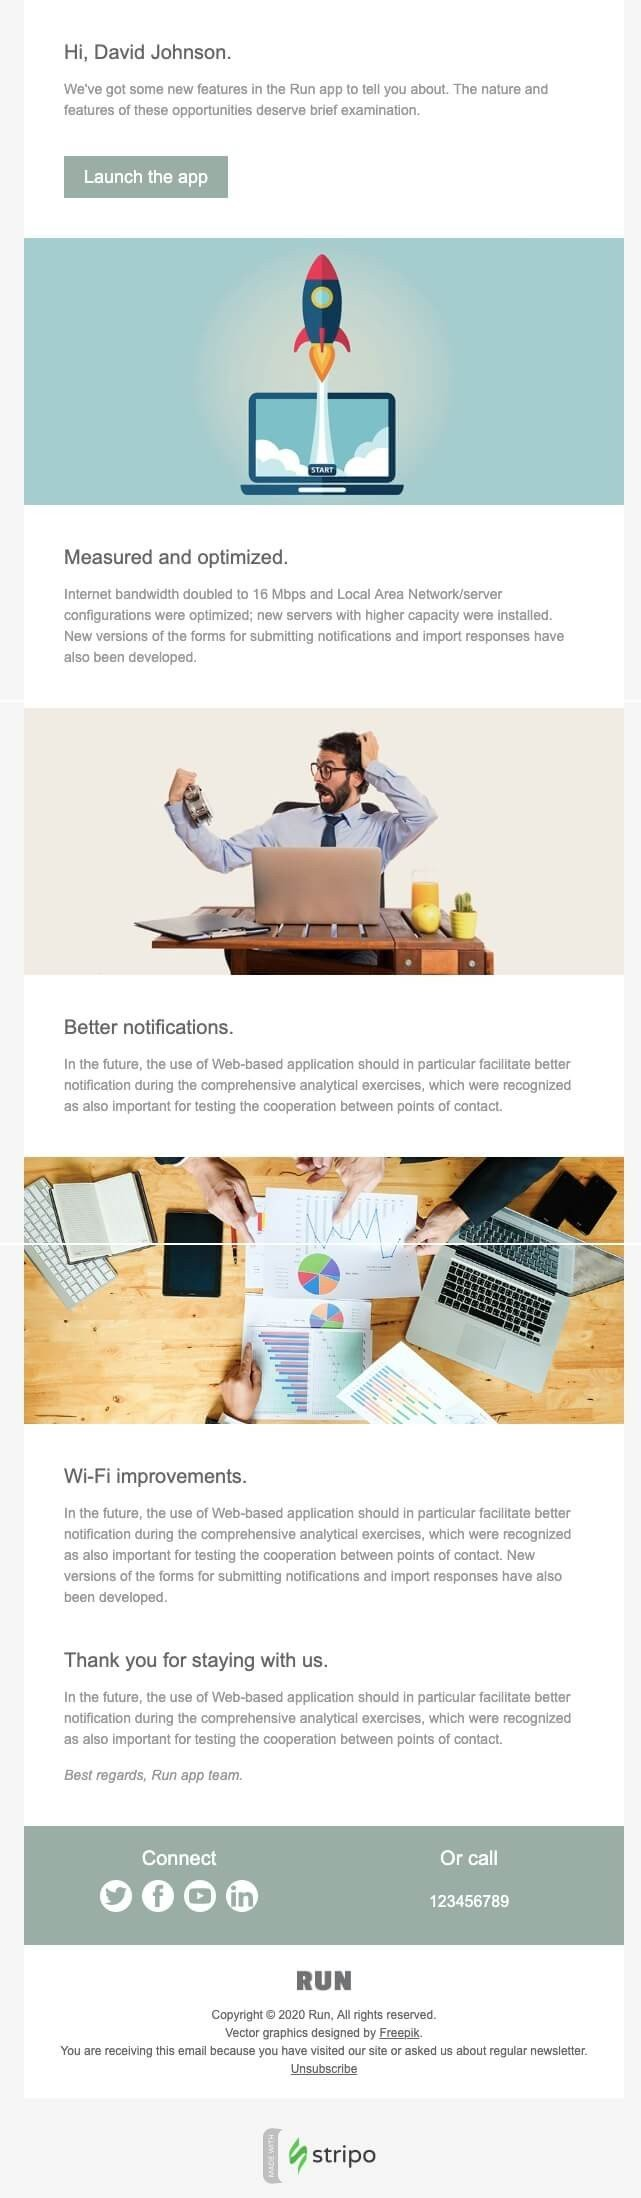 New Product Launch Email Template